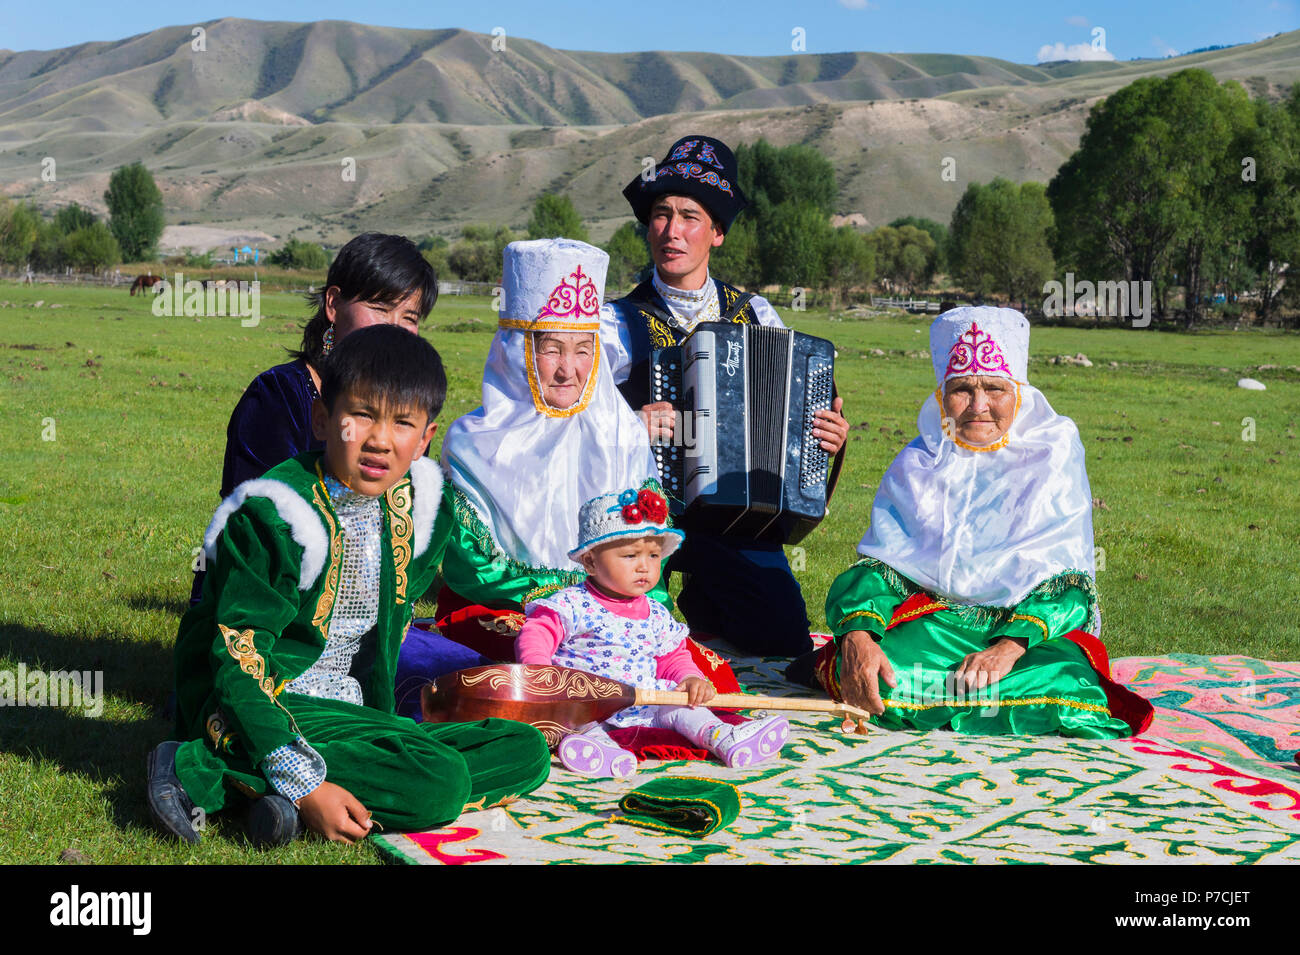 Kazakh family in traditional clothes, listening to accordion player, For editorial Use only, Sati village, Tien Shan Mountains, Kazakhstan Stock Photo